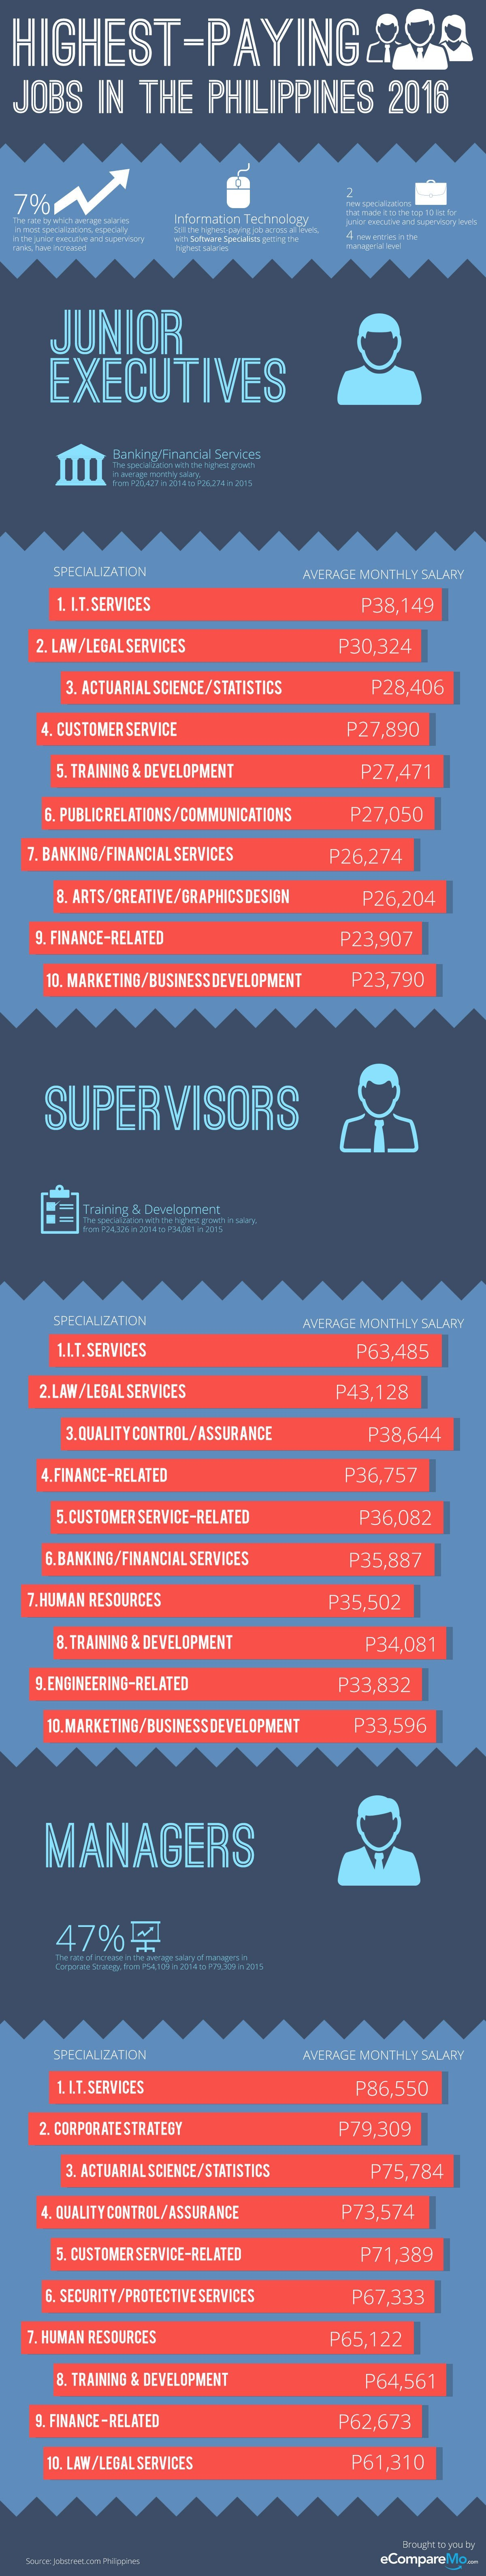 Infographic-Top-job-and-salaries-2016-V2